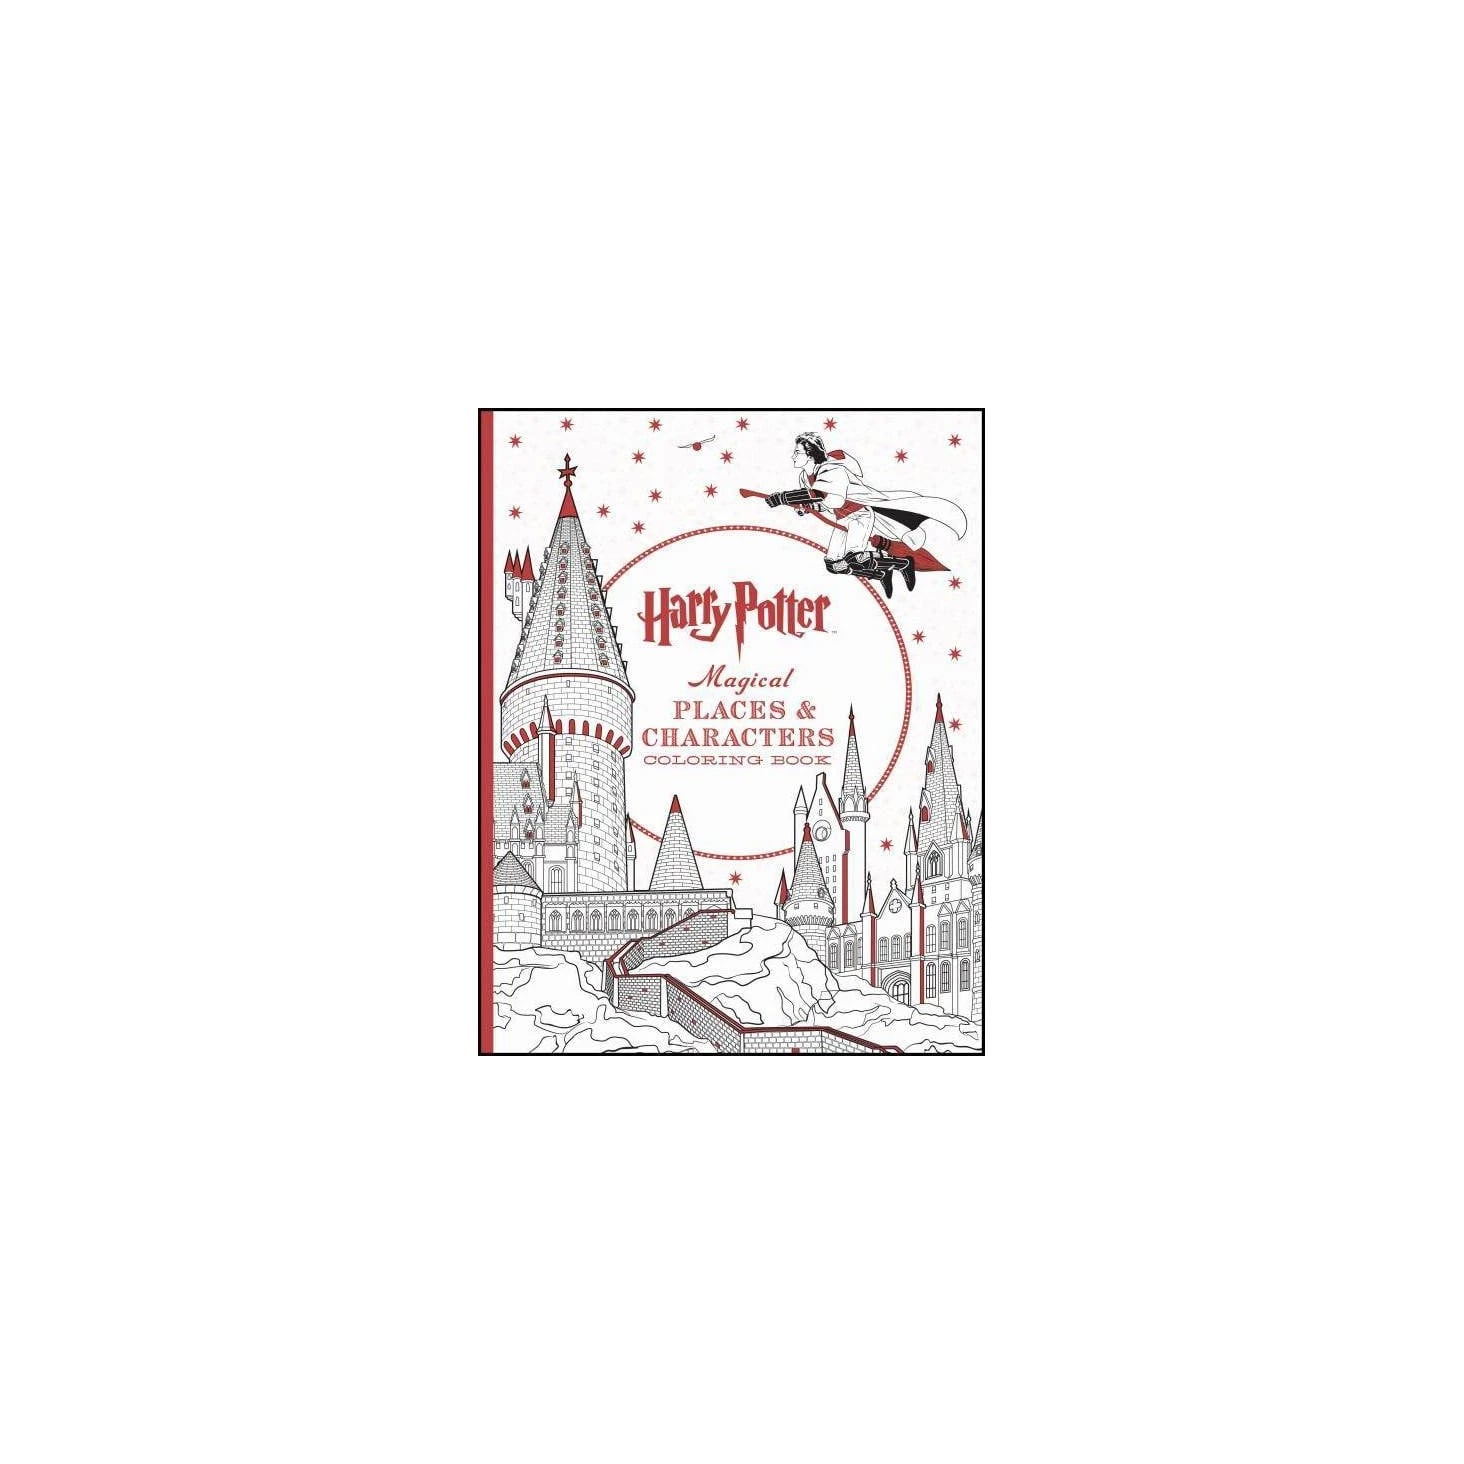 Harry Potter Magical Places & Characters Coloring Book These